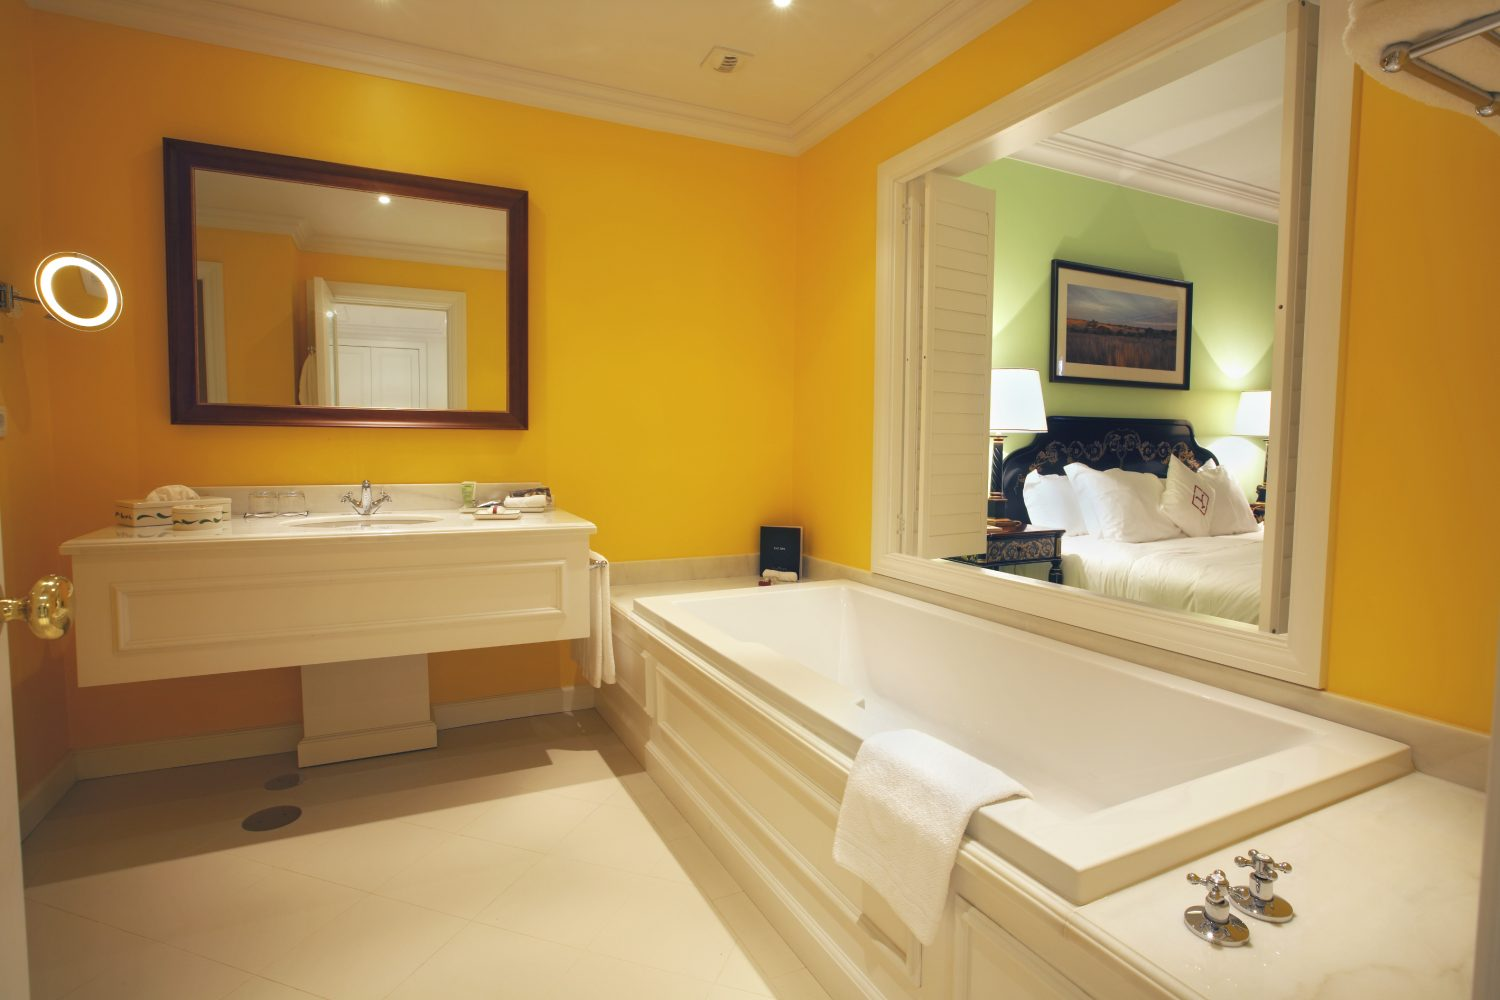 Suite Bathroom at Yeatman Relais & Chateaux Hotel